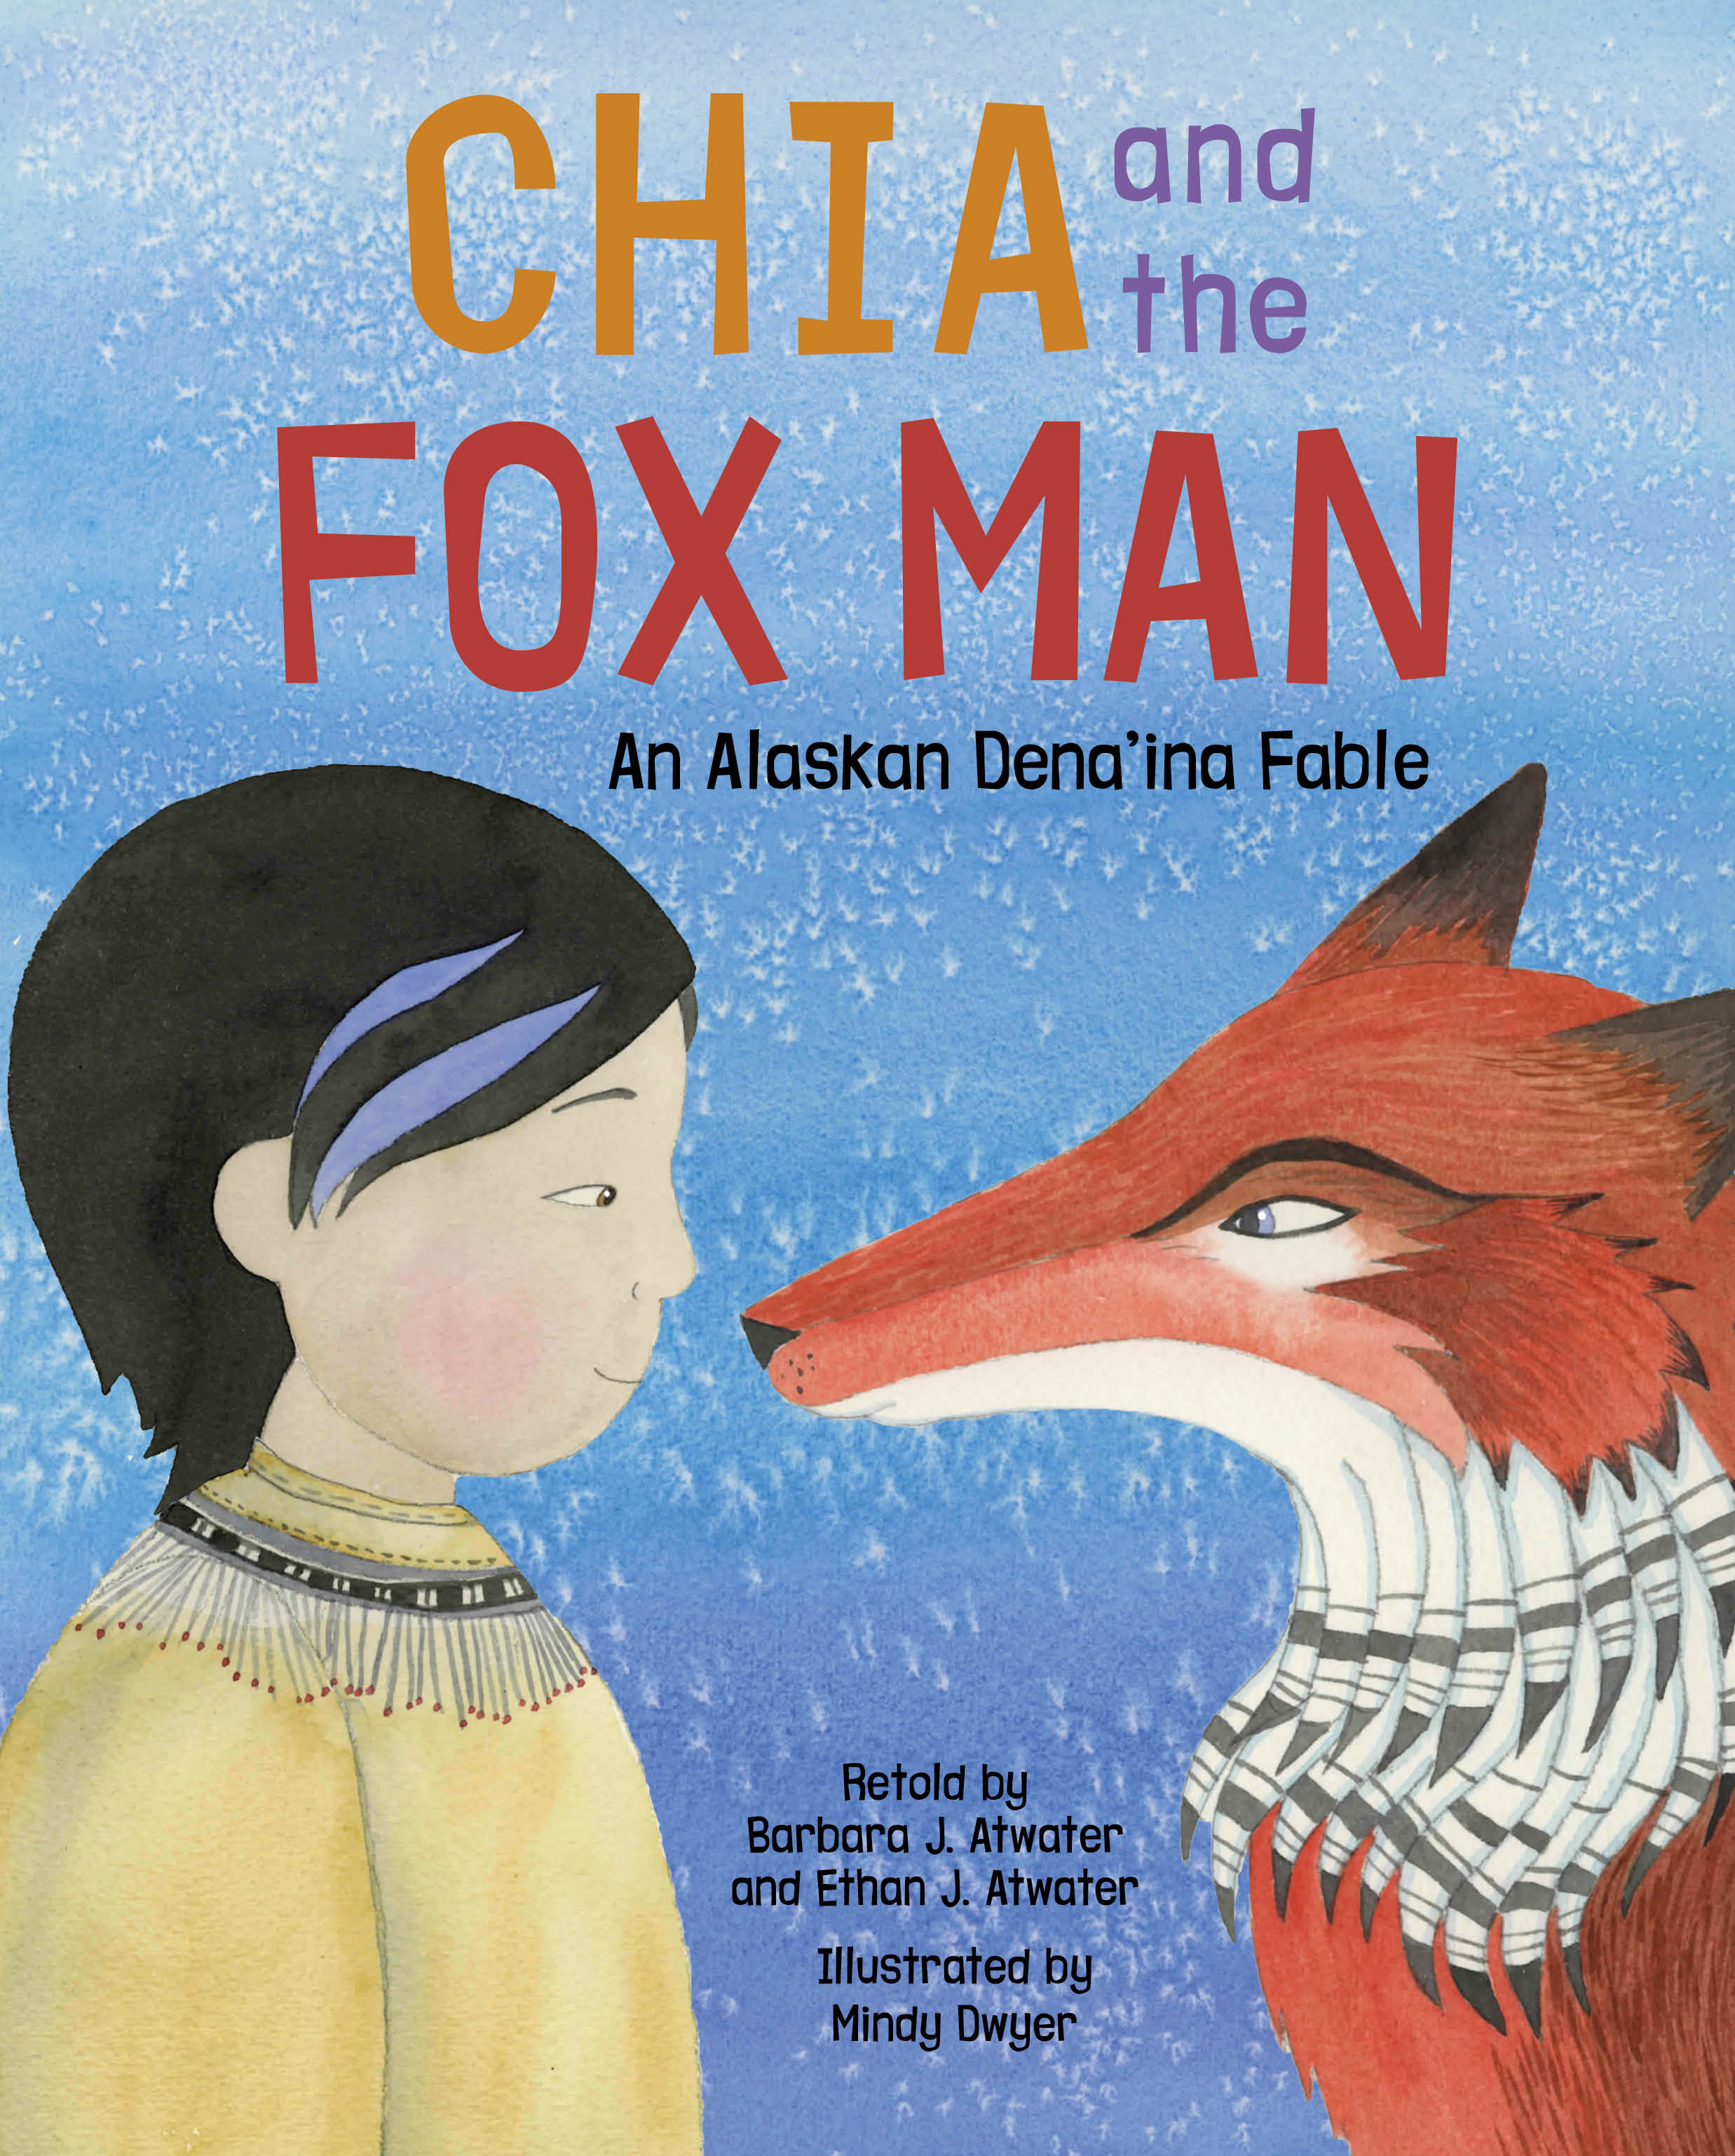 CHIA AND THE FOX MAN